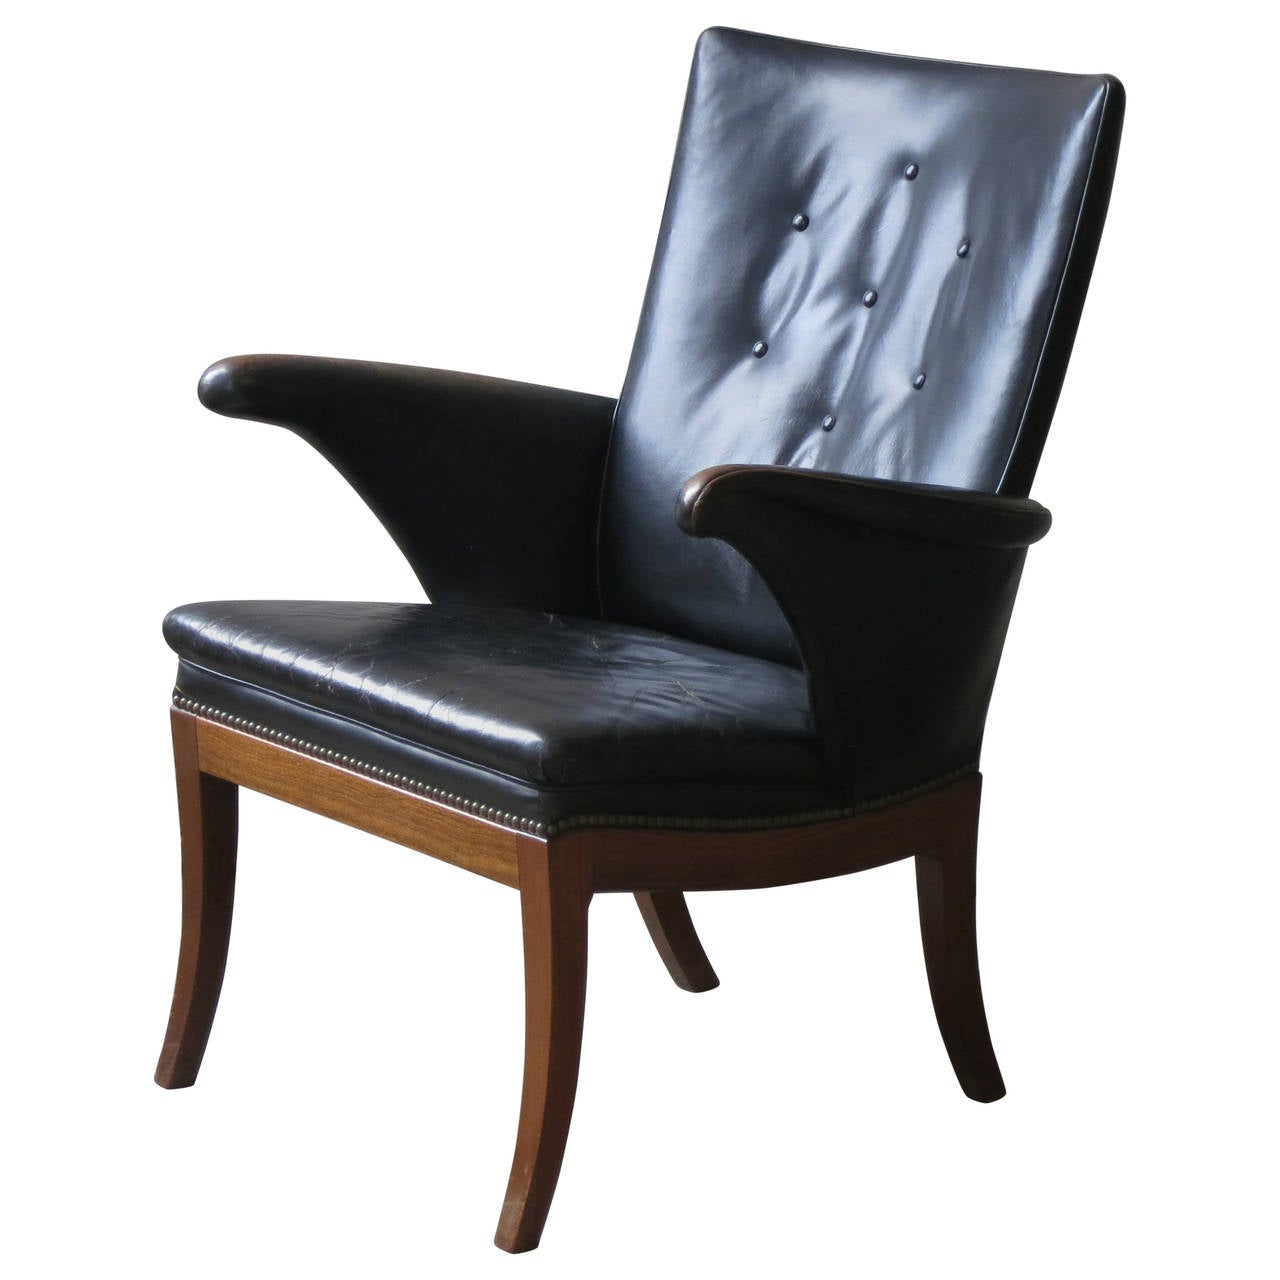 1930s Armchair in Original Black Leather by Frits Henningsen For Sale